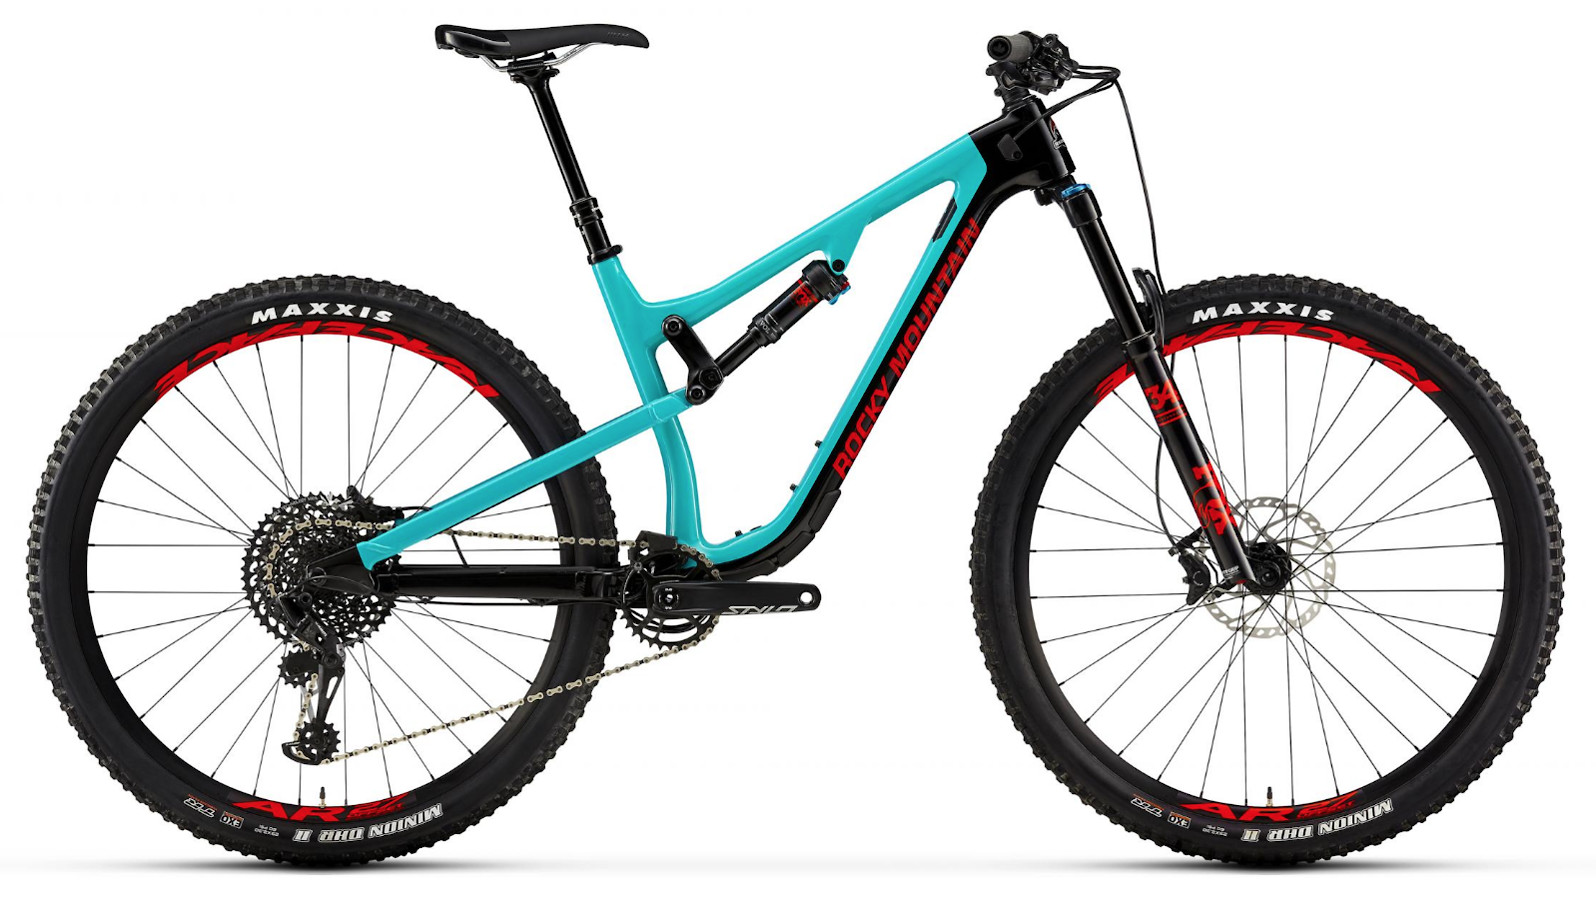 2019 Rocky Mountain Instinct Carbon 50 - Blue and red